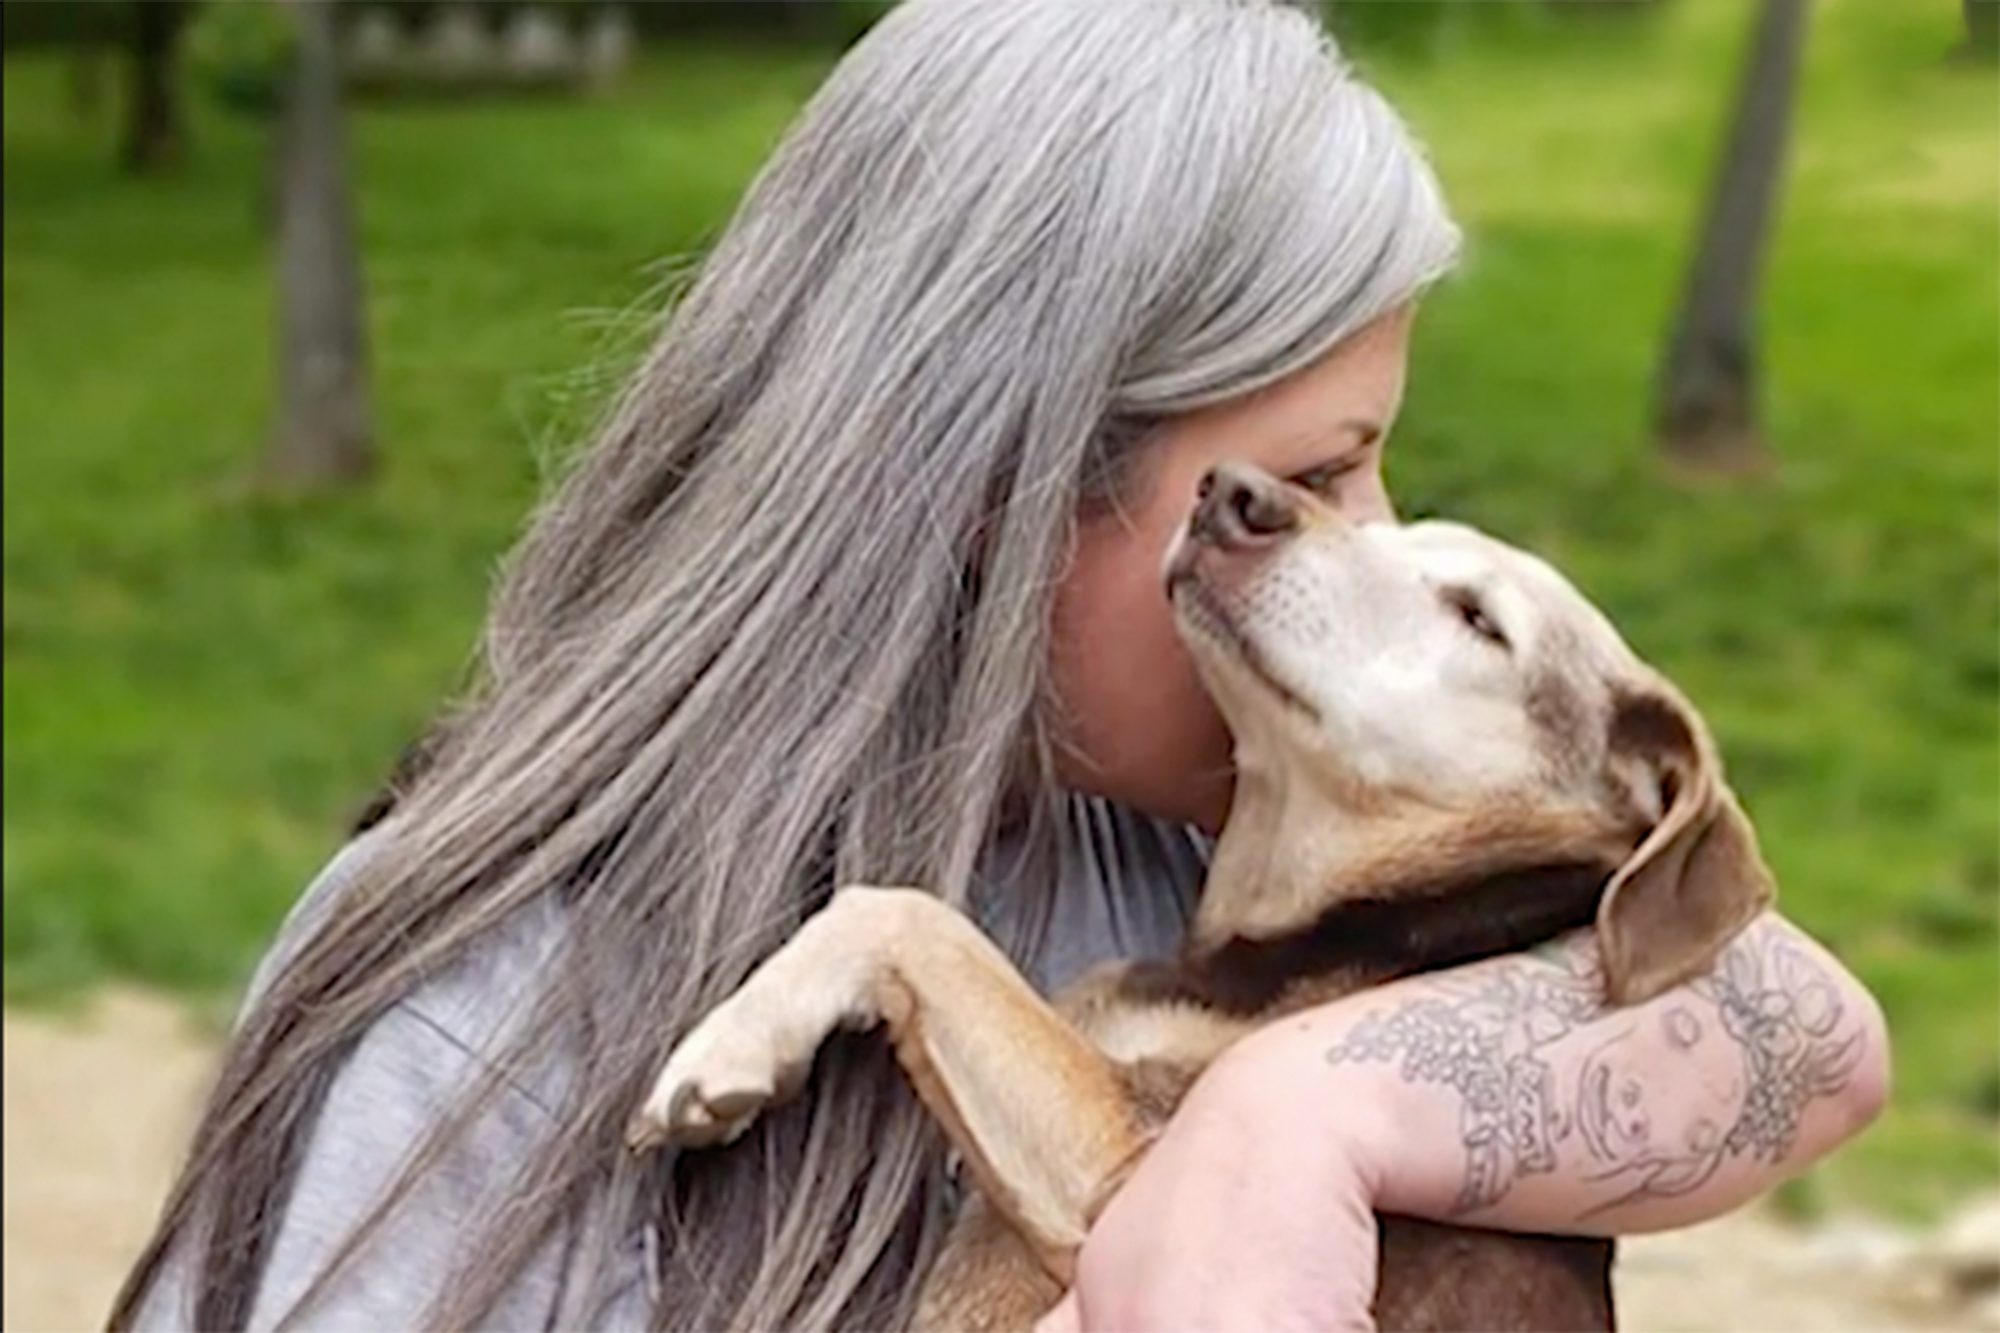 Valerie Reid with a dog from her senior dog sancutary Whispering Willows